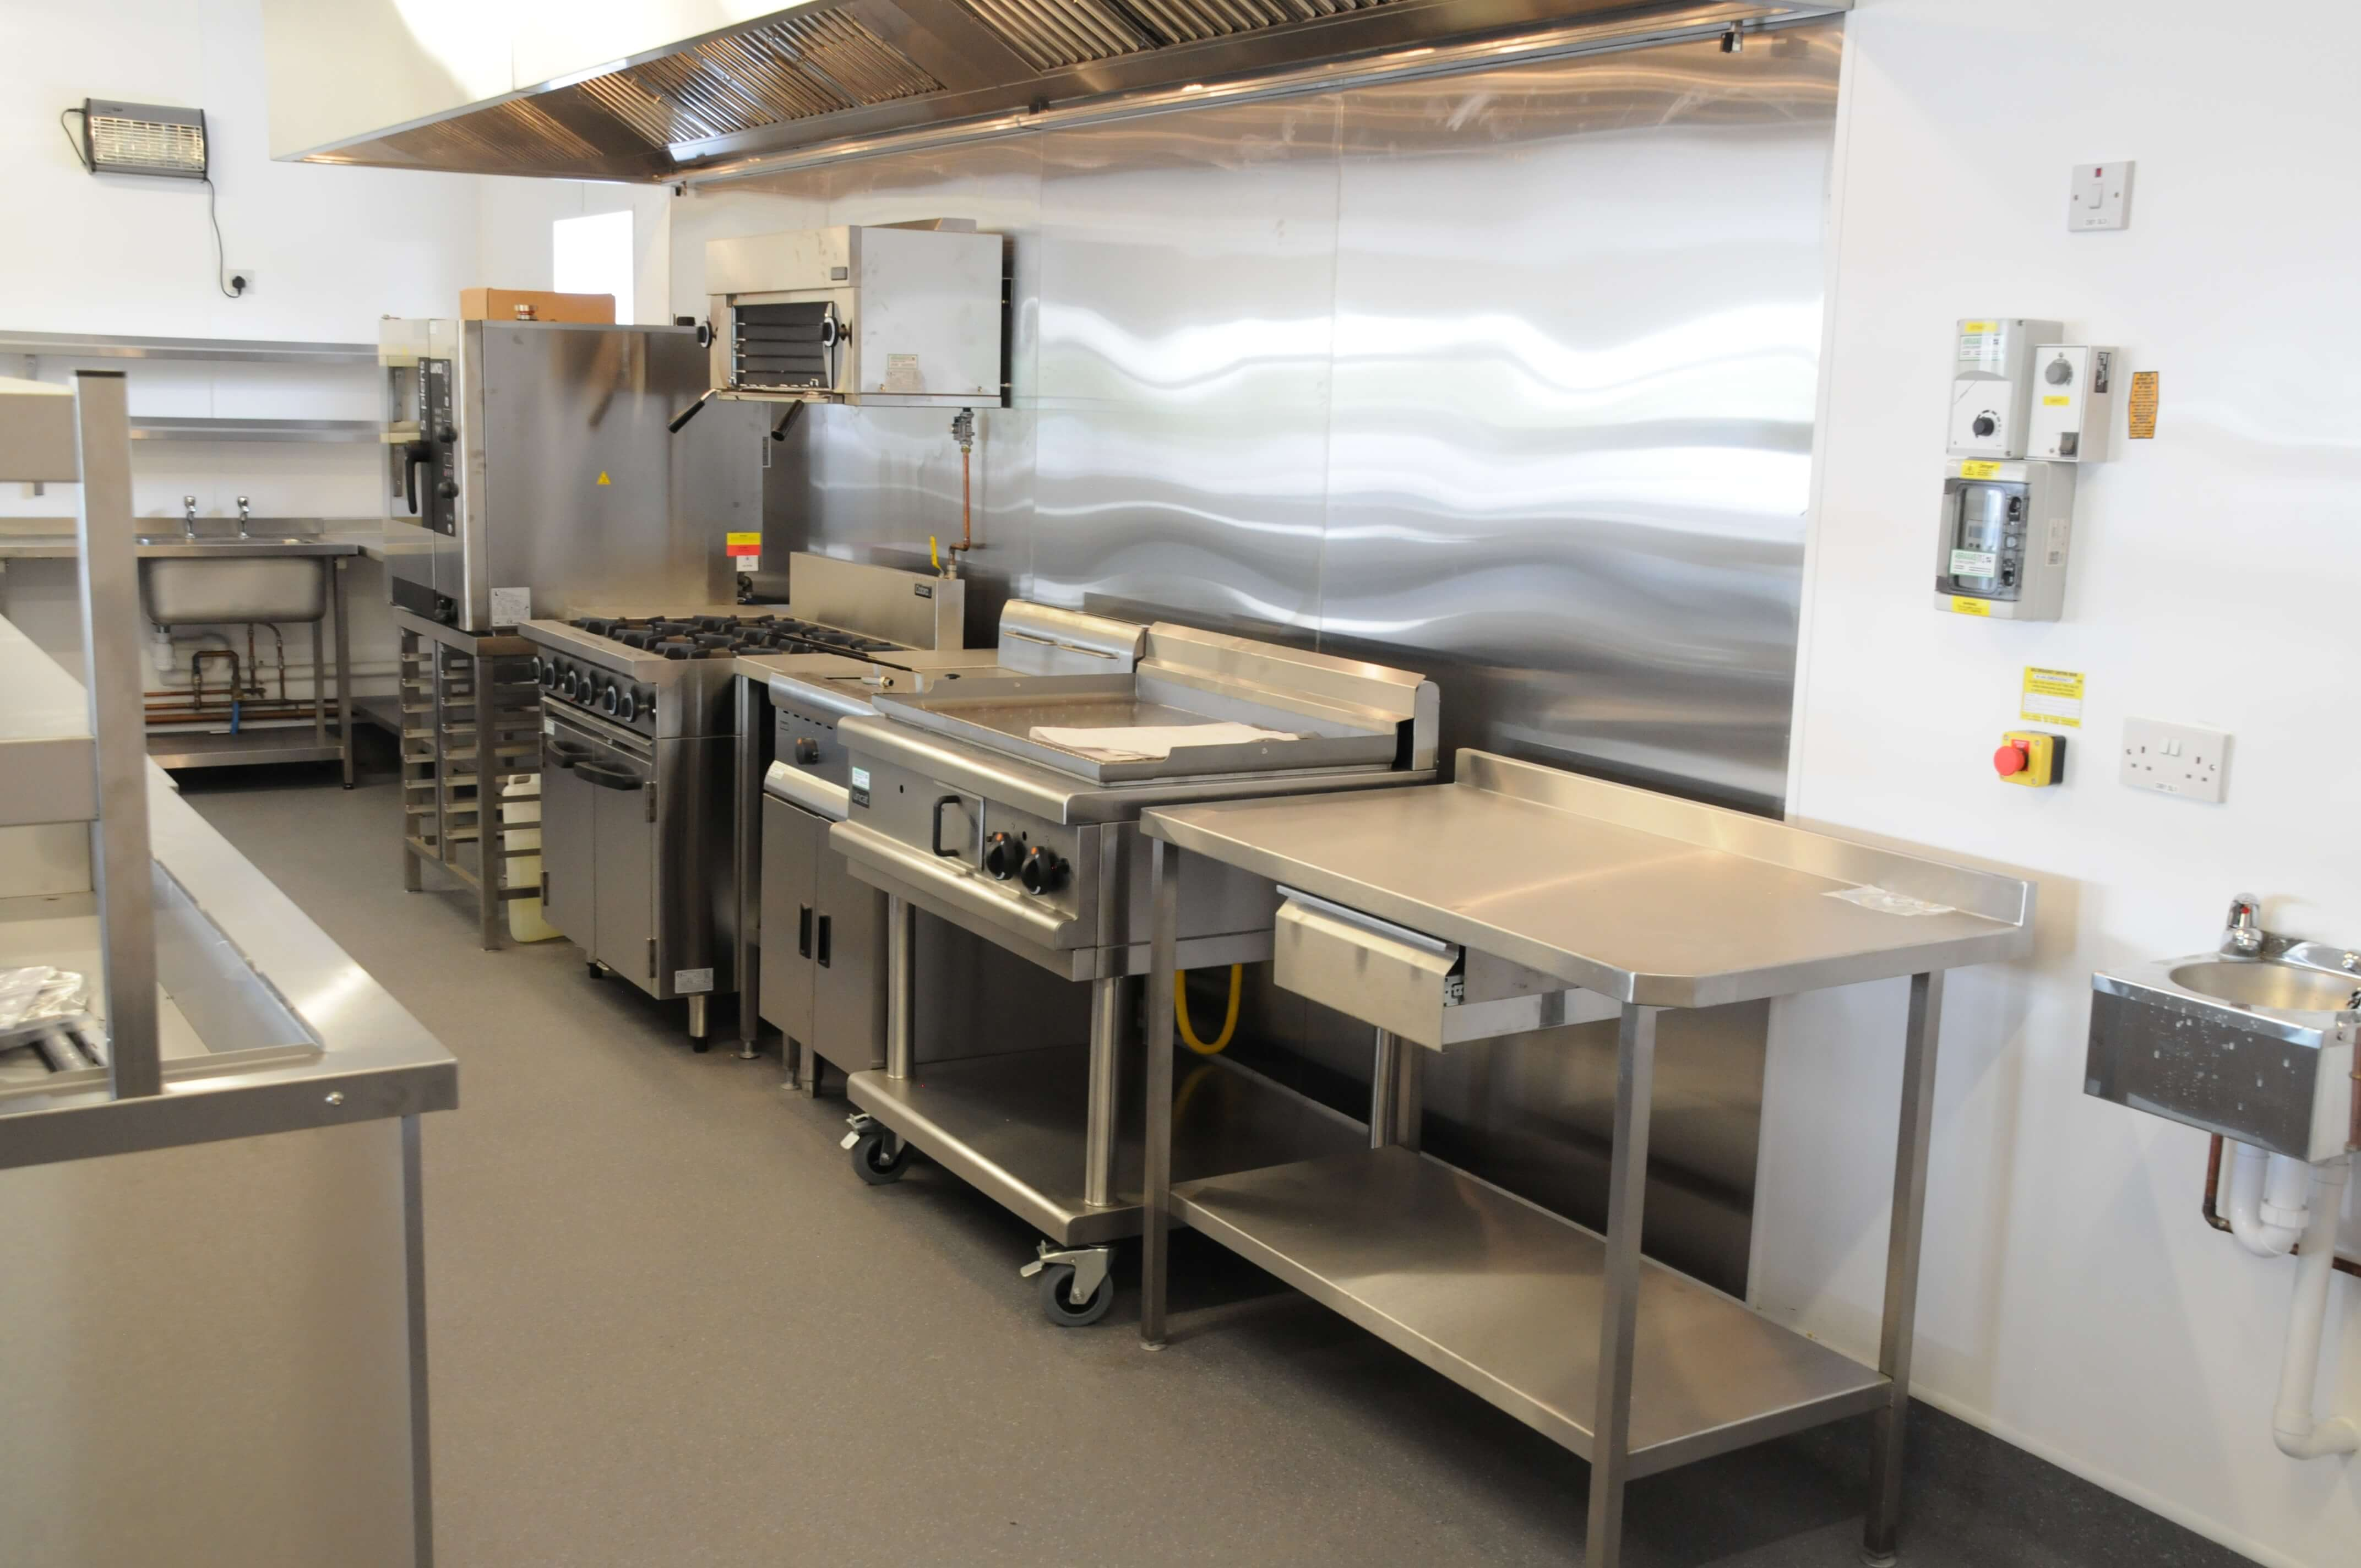 we also supplied and fitted a hygienic pvc wall cladding system which created a bright and clean environment within the kitchen and reduced cleaning time